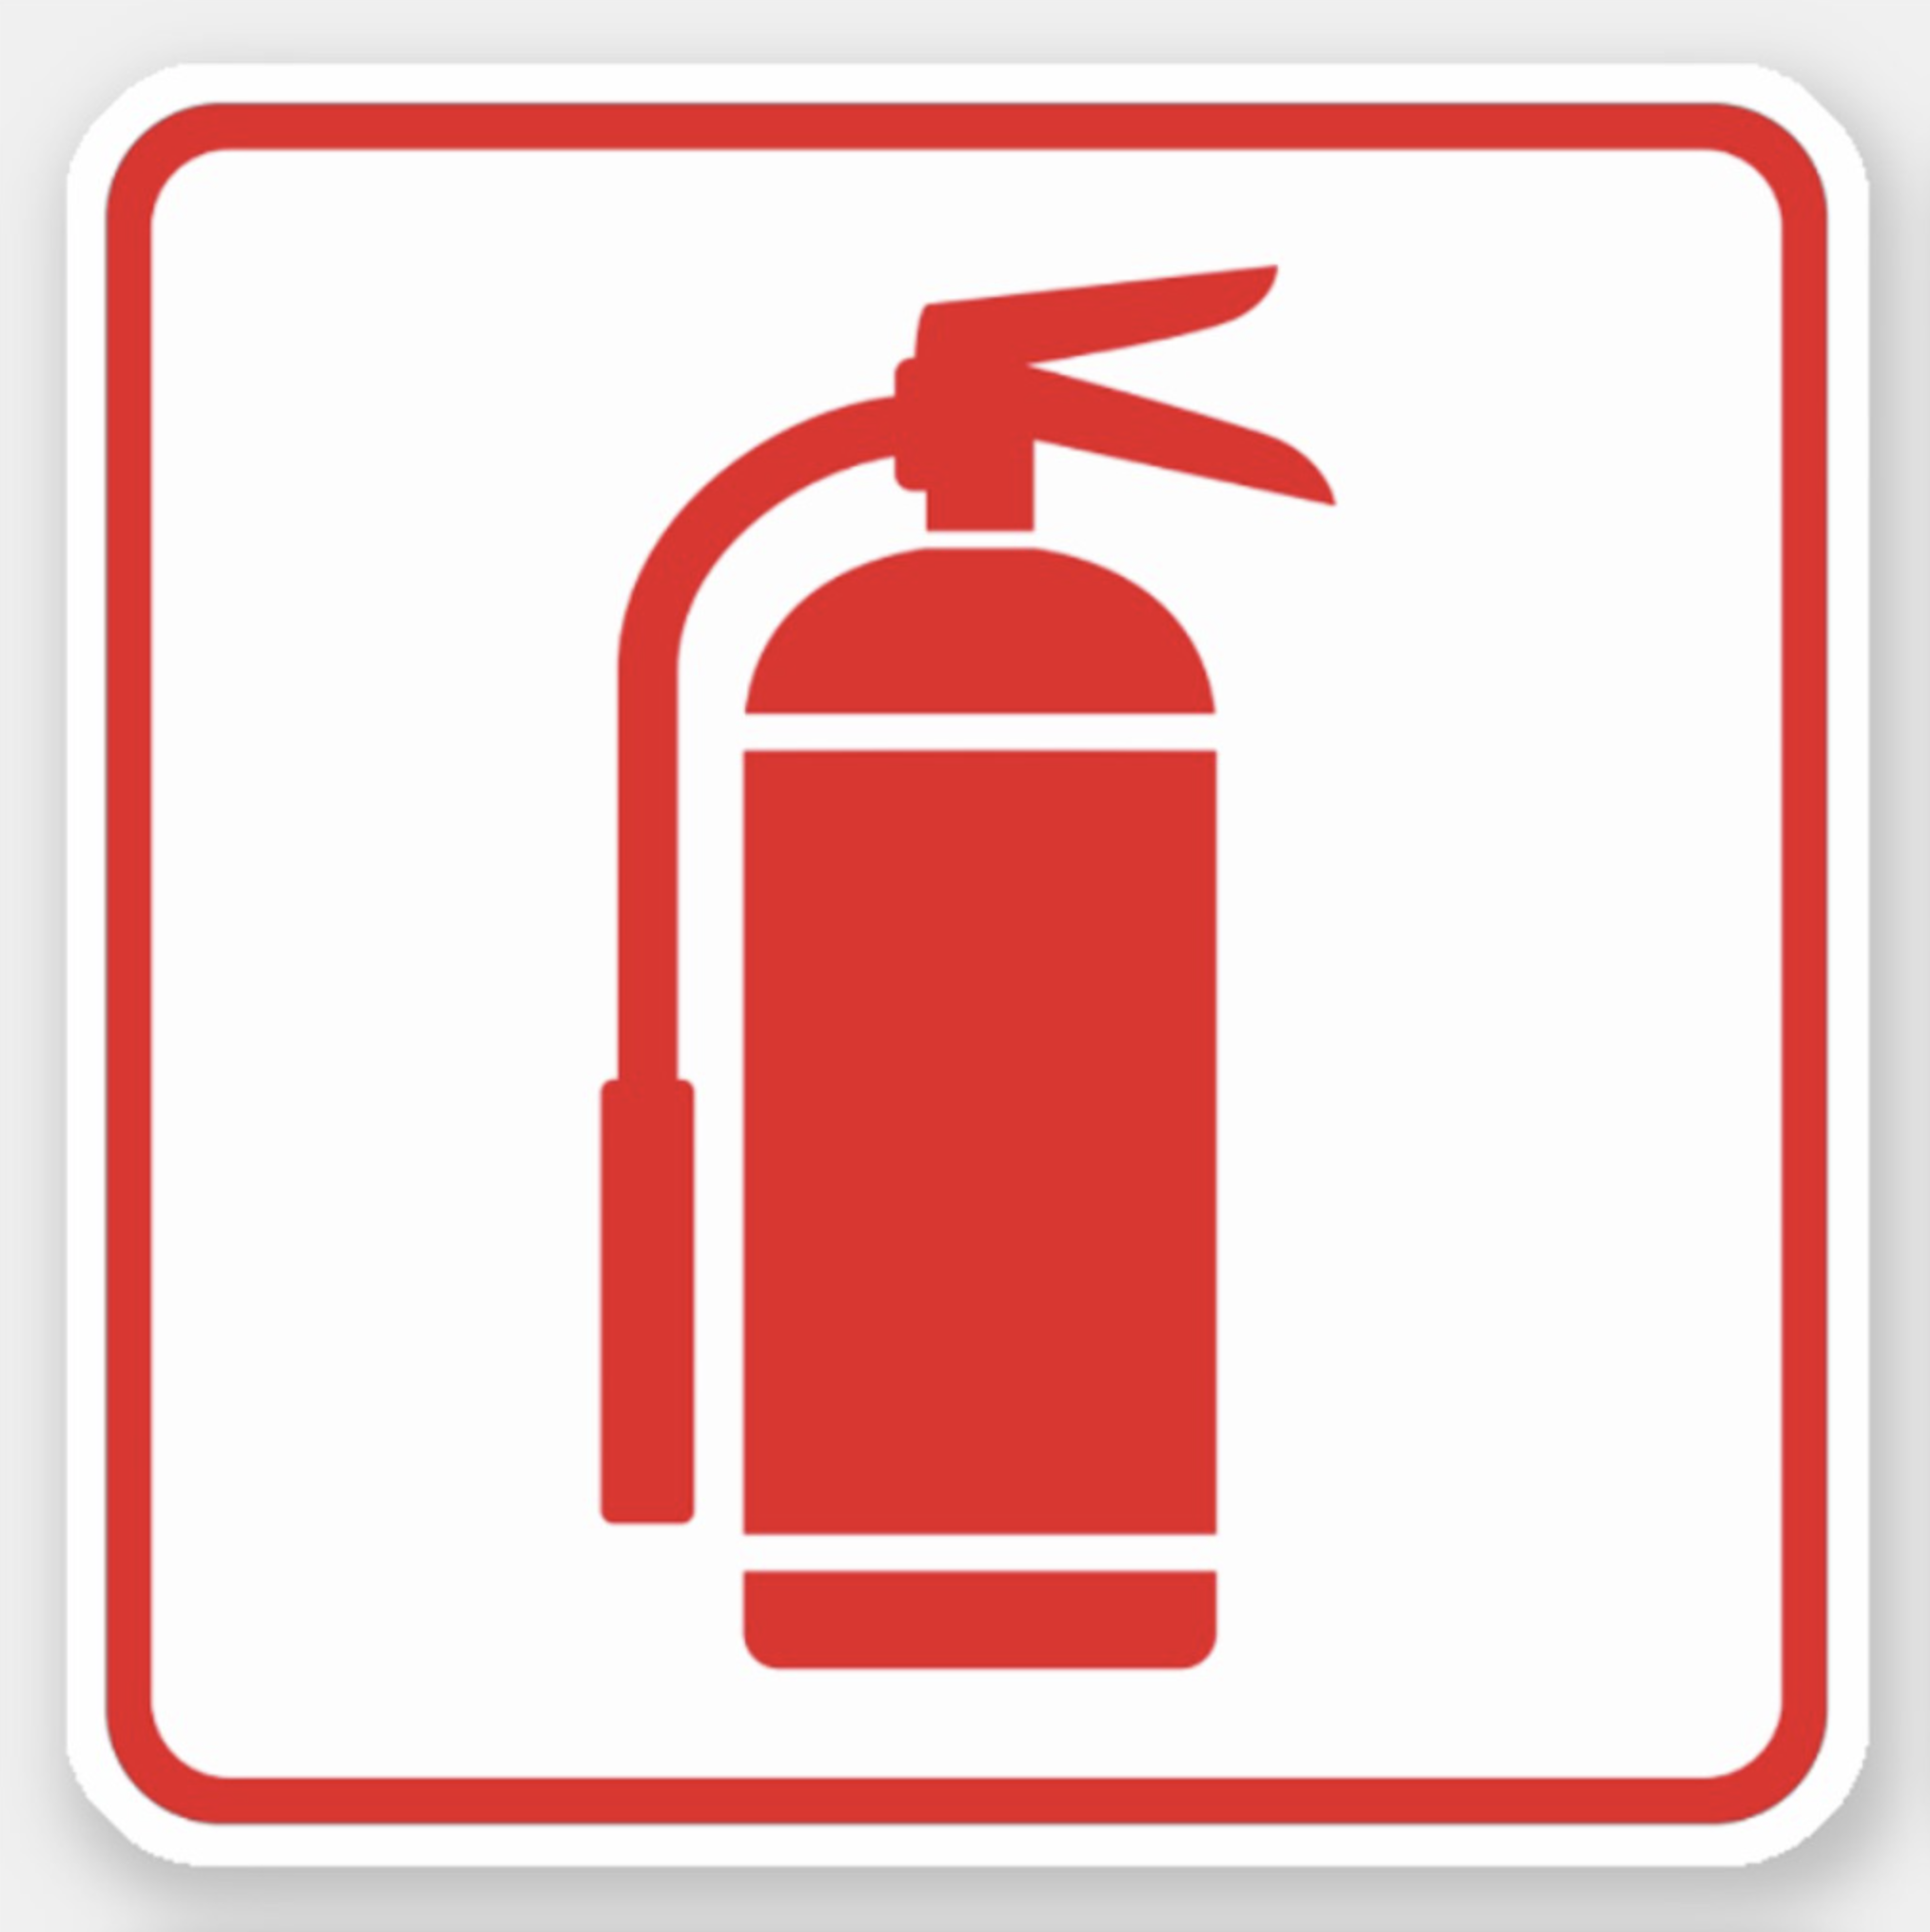 Fire Extinguisher Symbol Red On White Red Border Sticker Zazzle Com In 2021 Fire Extinguisher Extinguisher Symbols